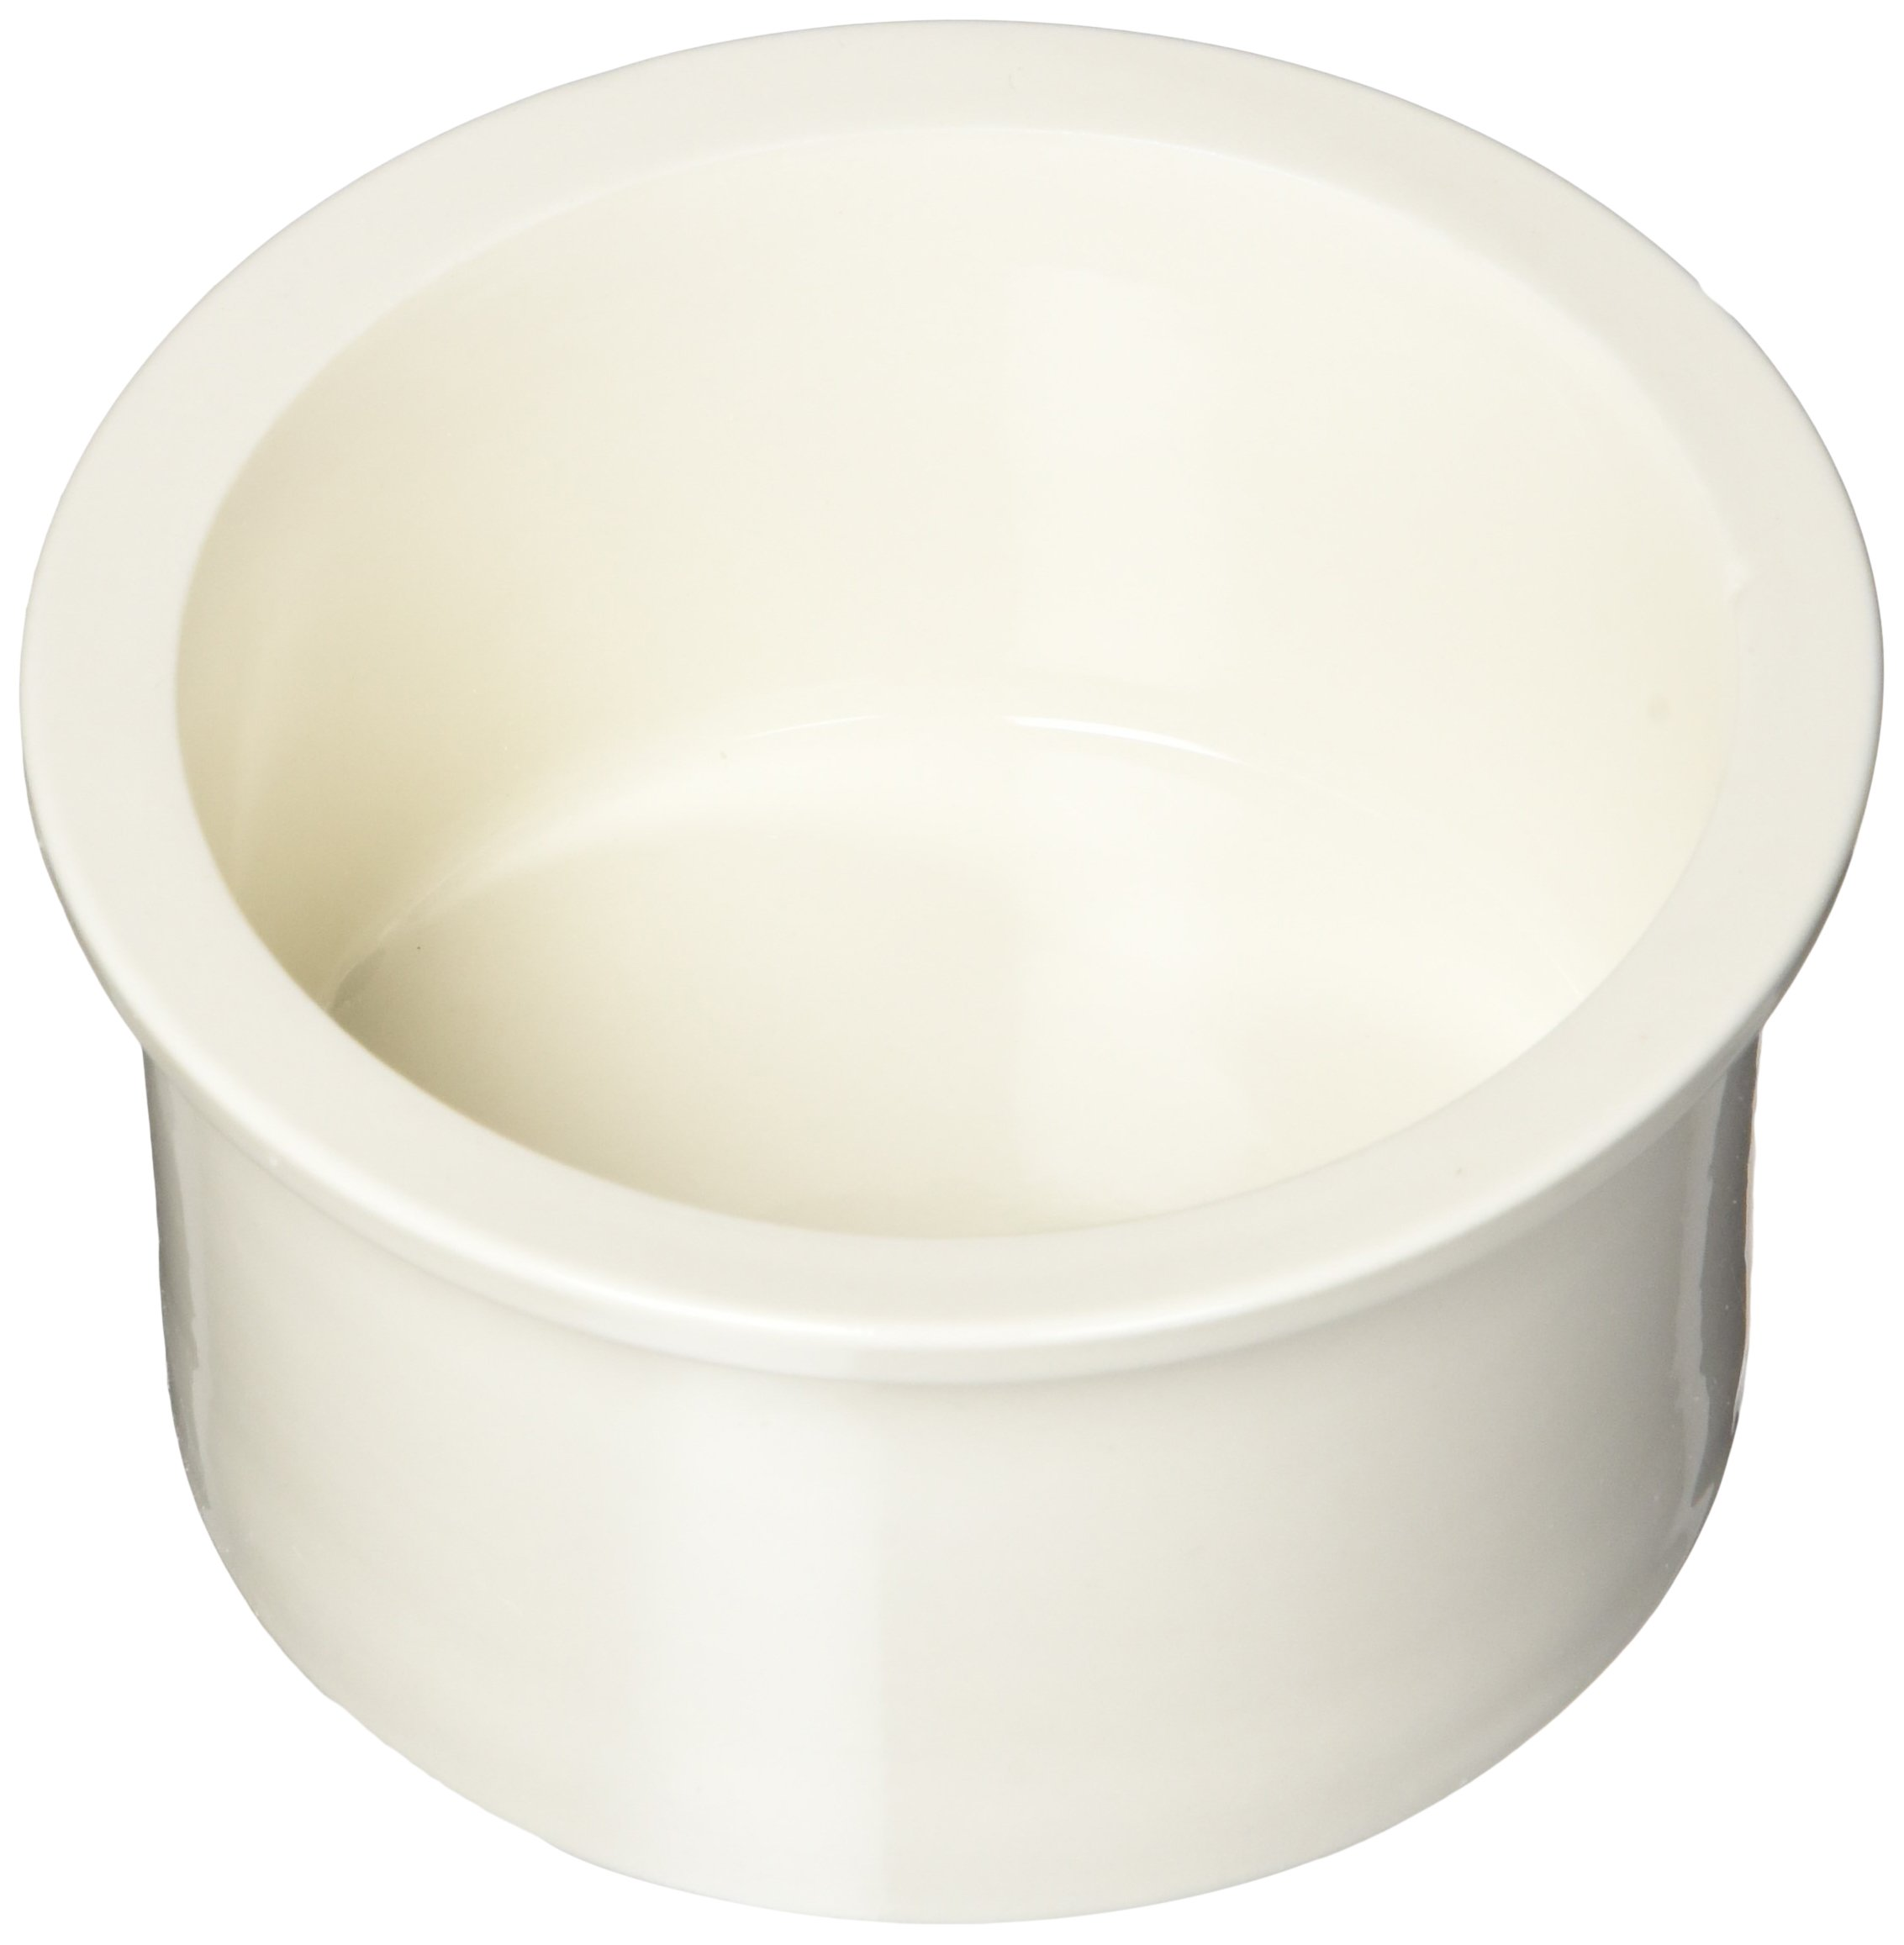 Prevue Pet Products Ceramic 4 Bowl Replacement Cup Set, Bone White